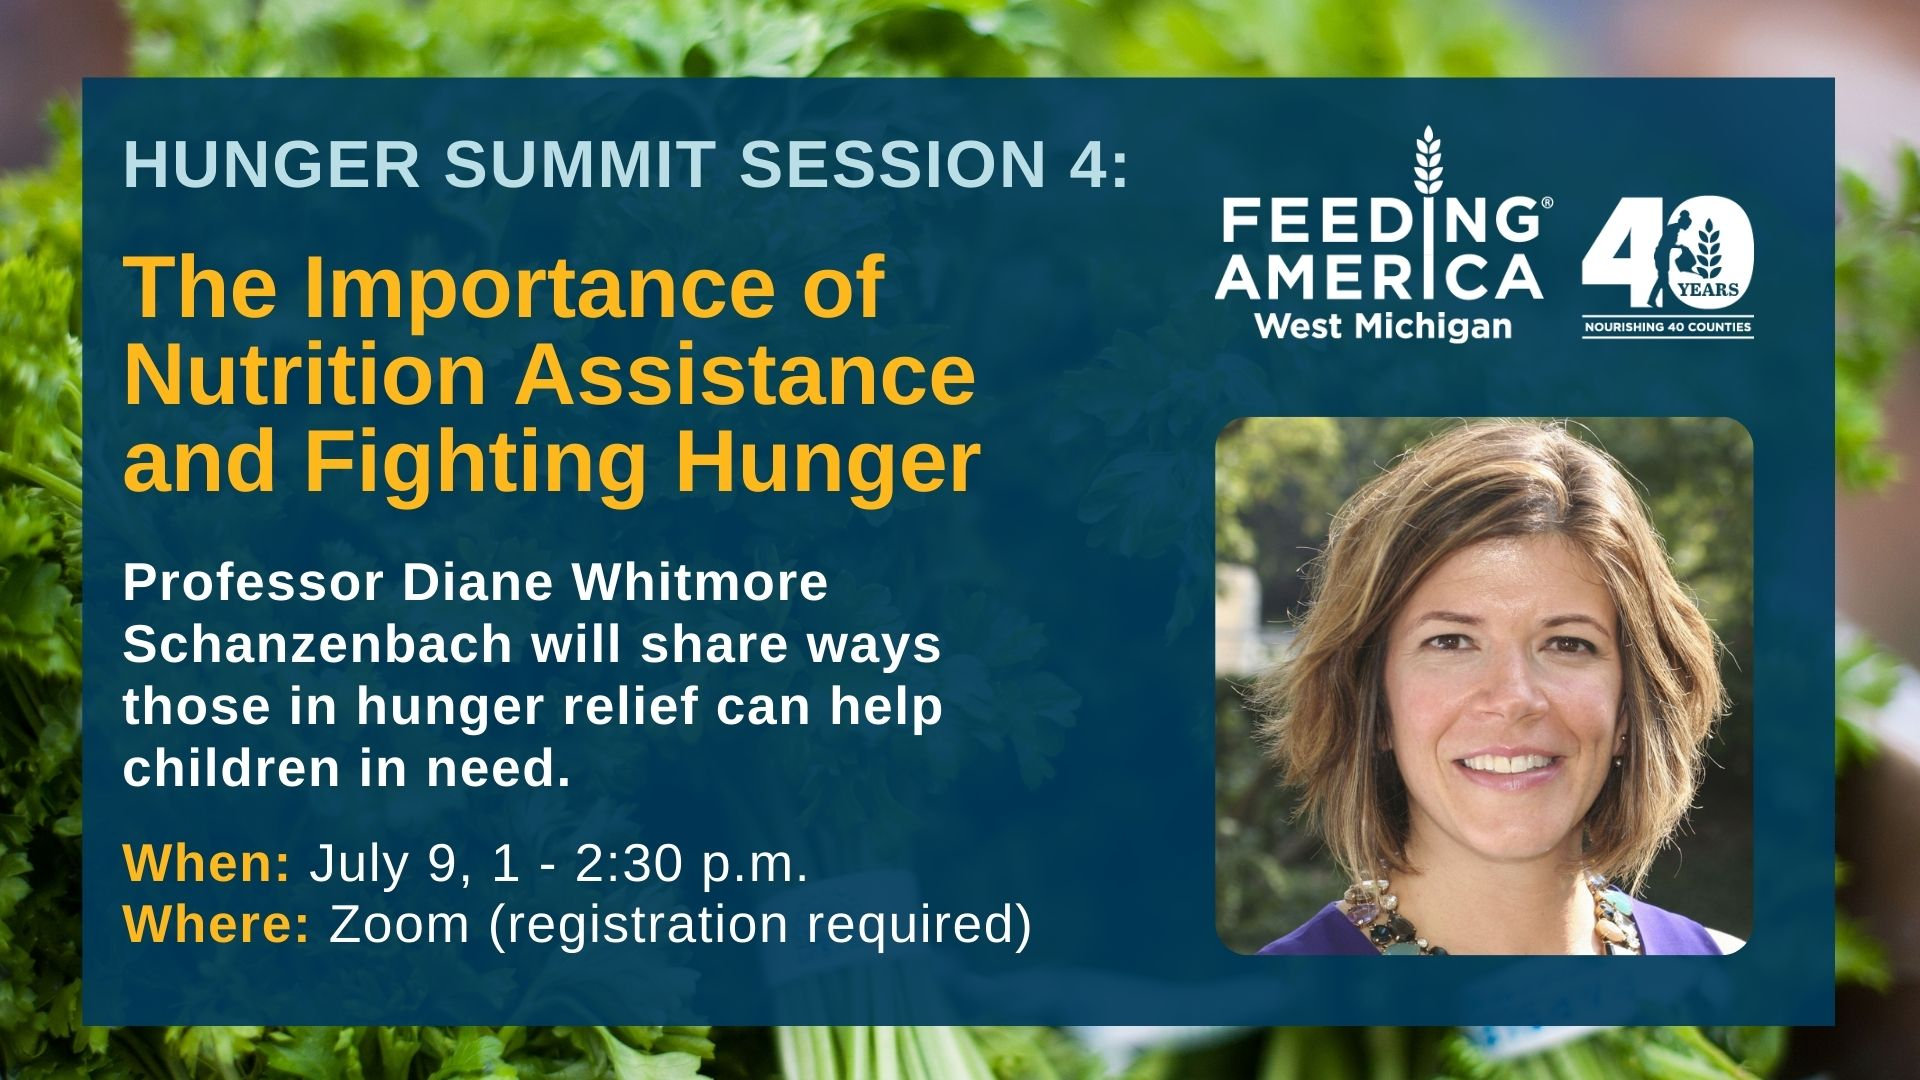 Hunger Summit Session 4 - The Importance of Nutrition Assistance and Fighting Hunger - Professor Diane Whitmore Schanzenbach will share ways those in hunger relief can help children in need - July 9, 1-2:30 PM on Zoom (registration required)